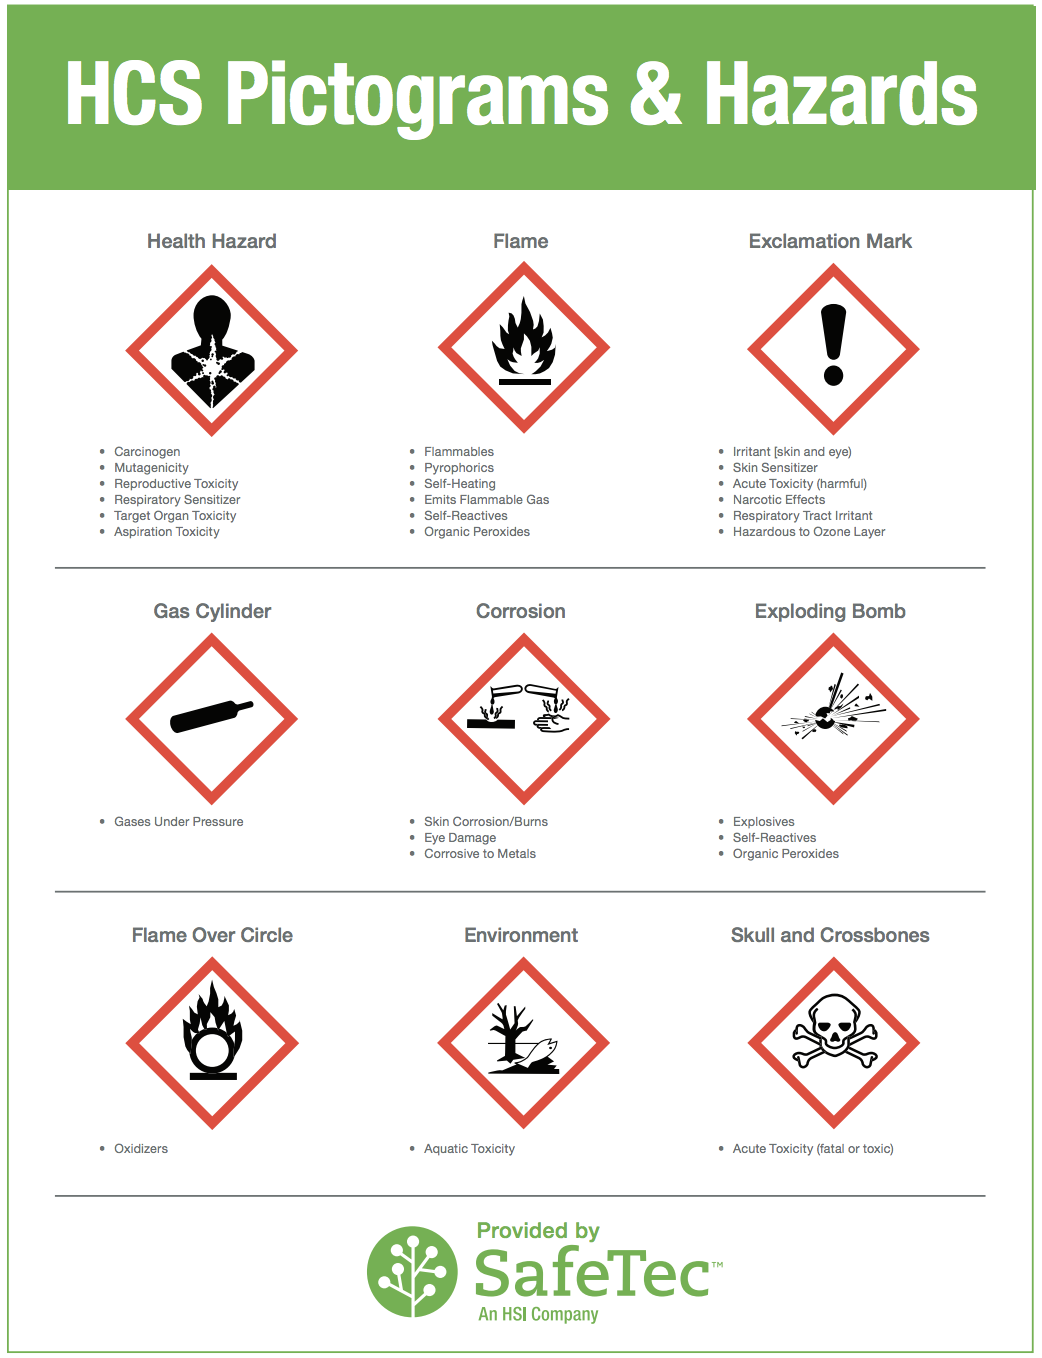 HazCom Signage and Pictograms